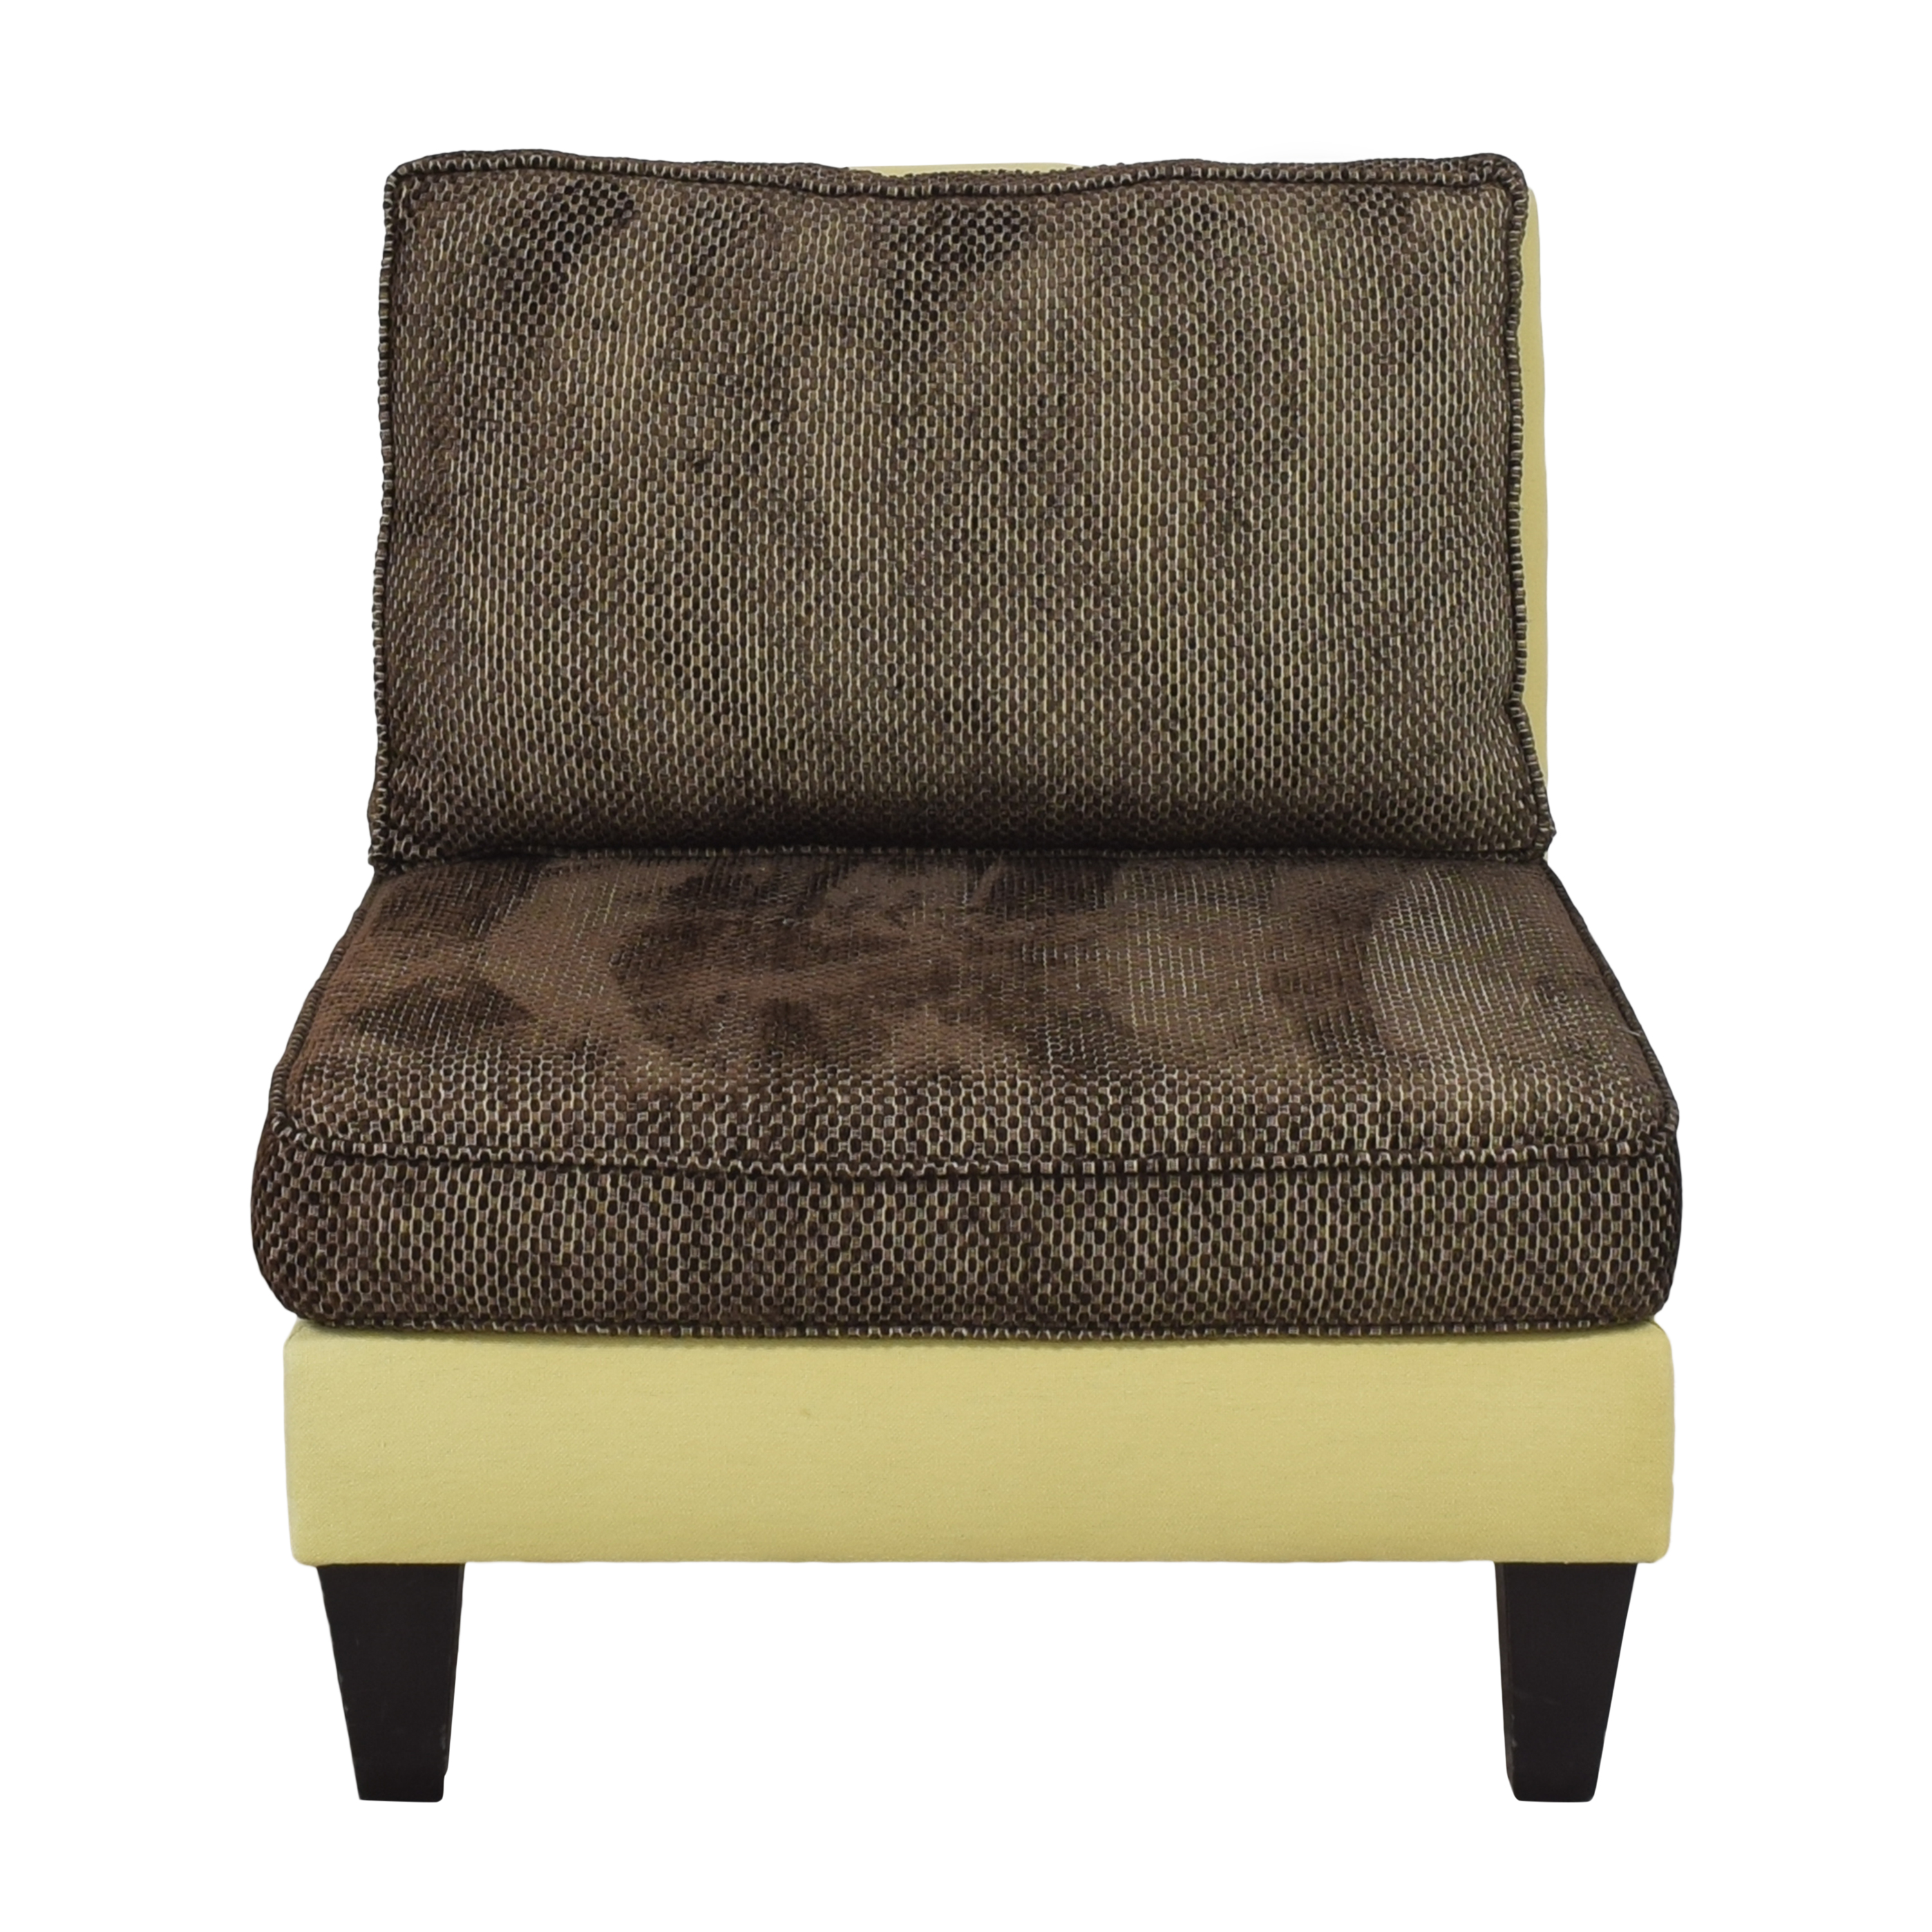 Moss Home Moss Home Cypress Slipper Chair for sale